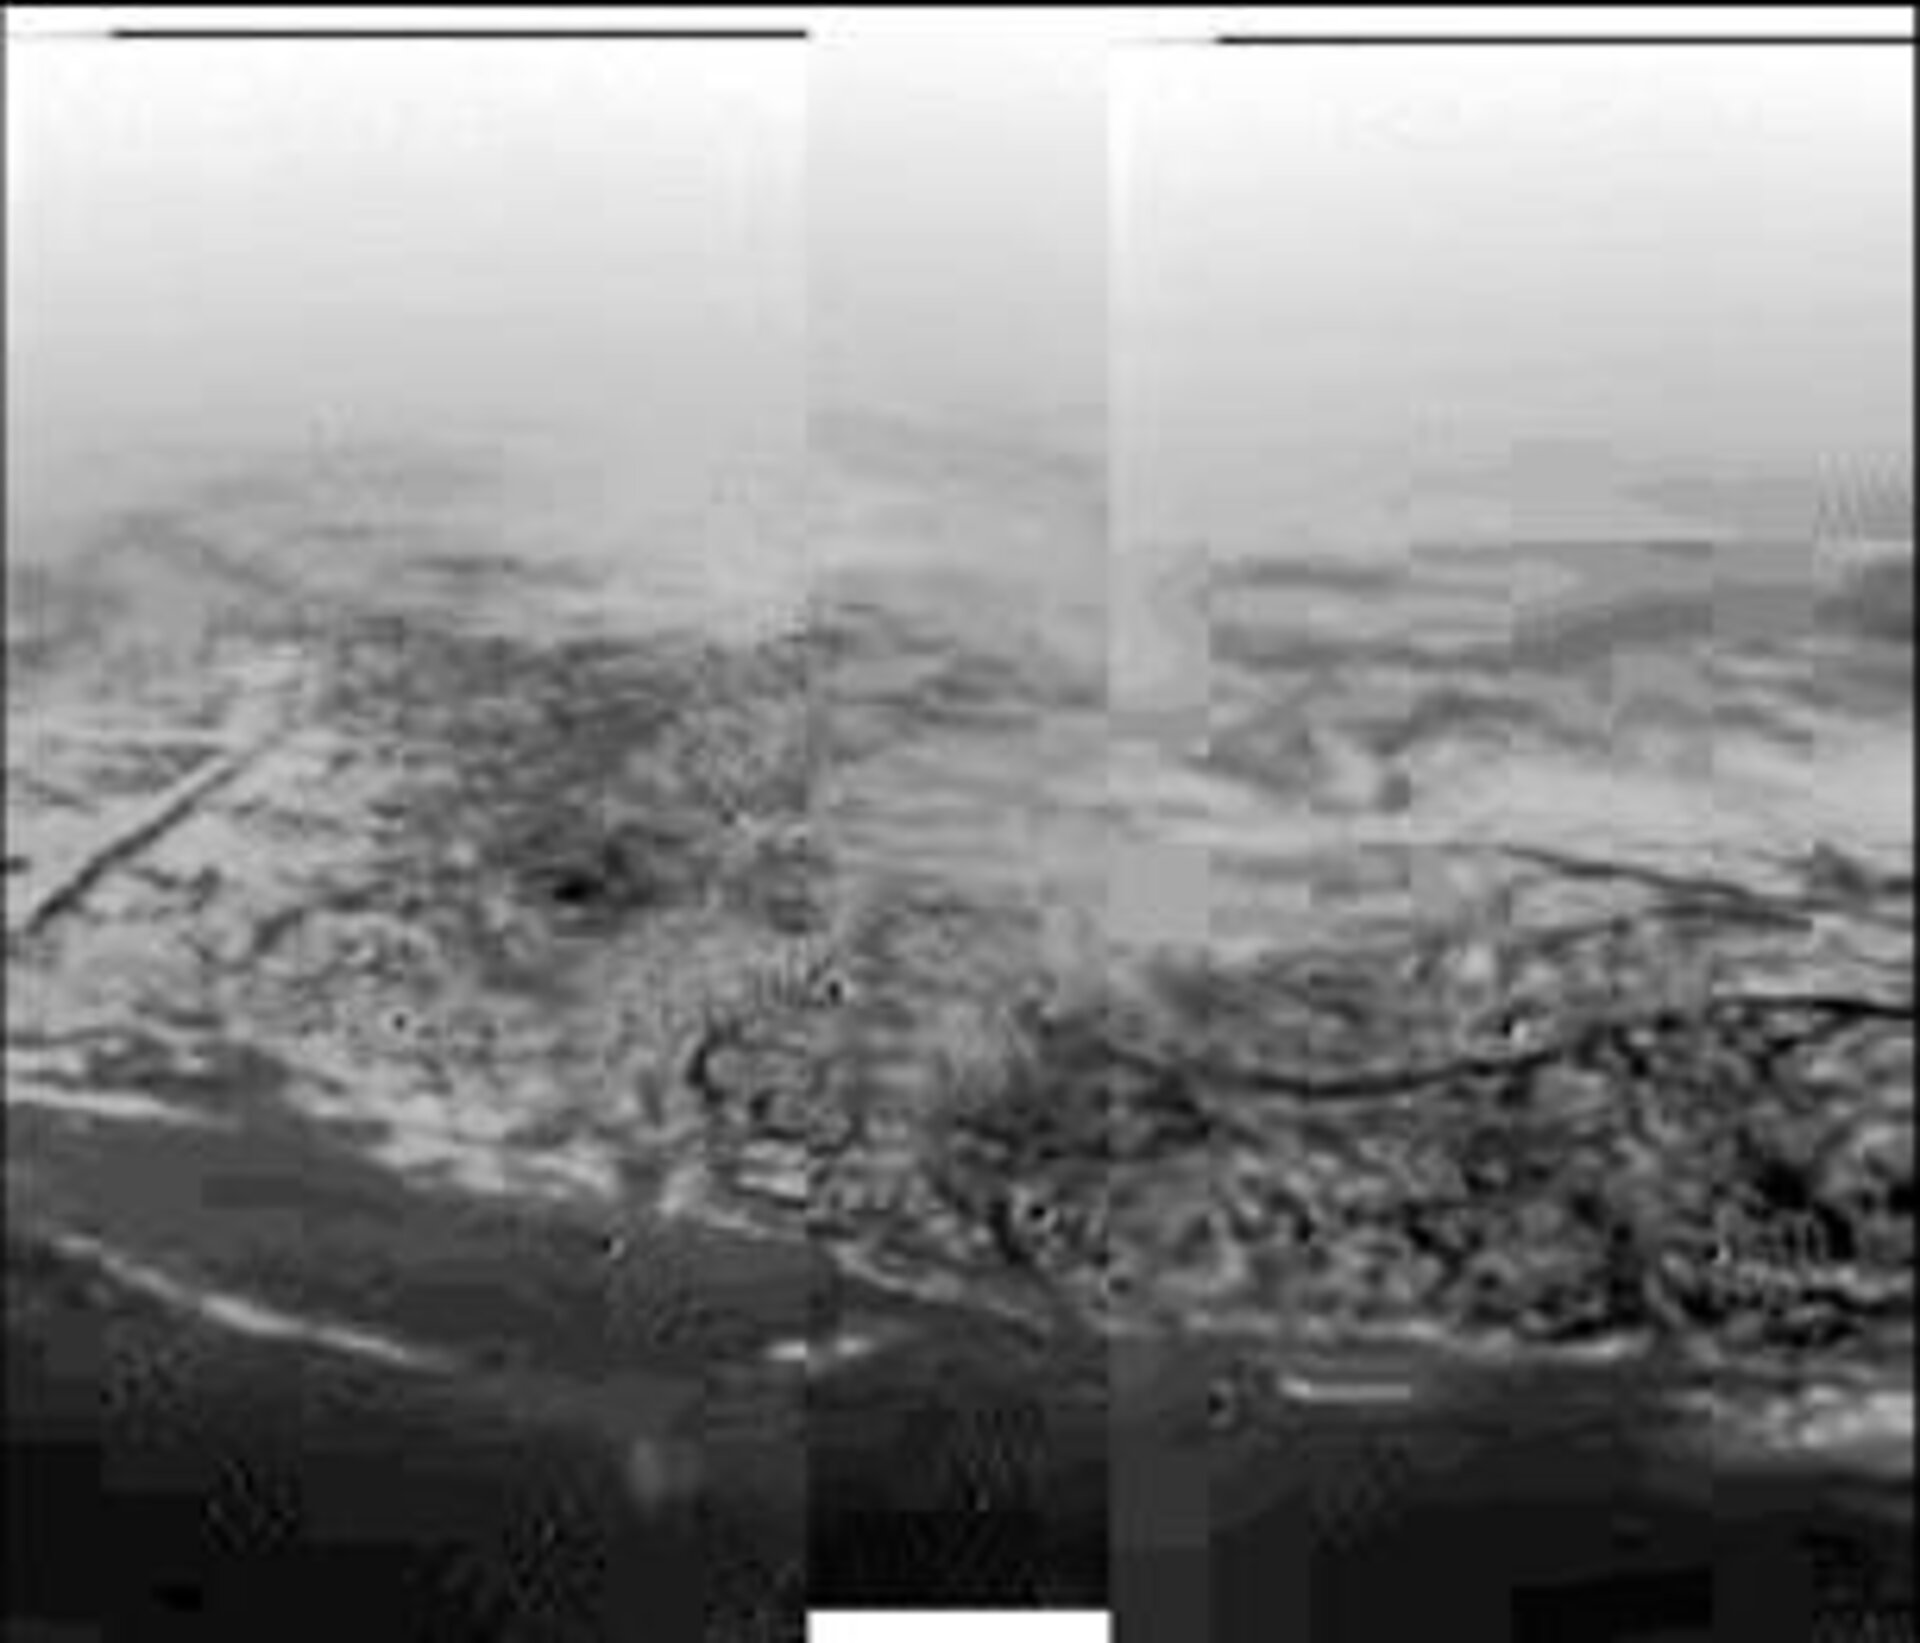 Huygens' view of Titan